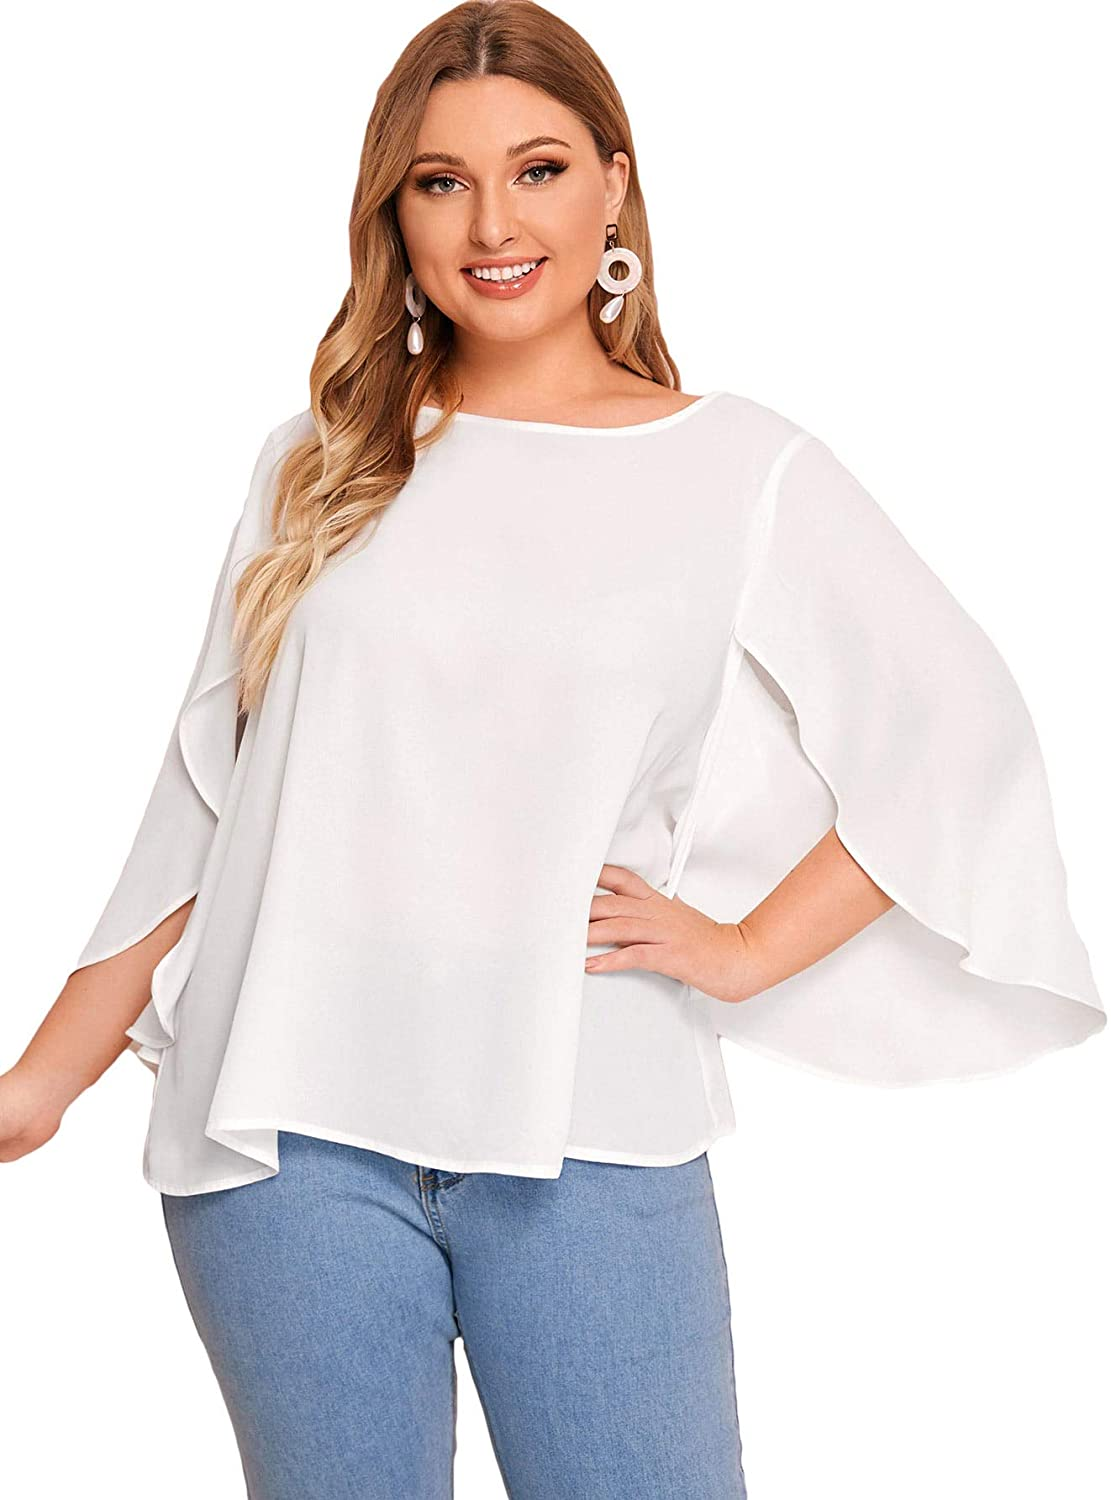 ROMWE Womens Plus Size 3/4 Overlap Sleeve Boat Neck Chiffon Blouse Top